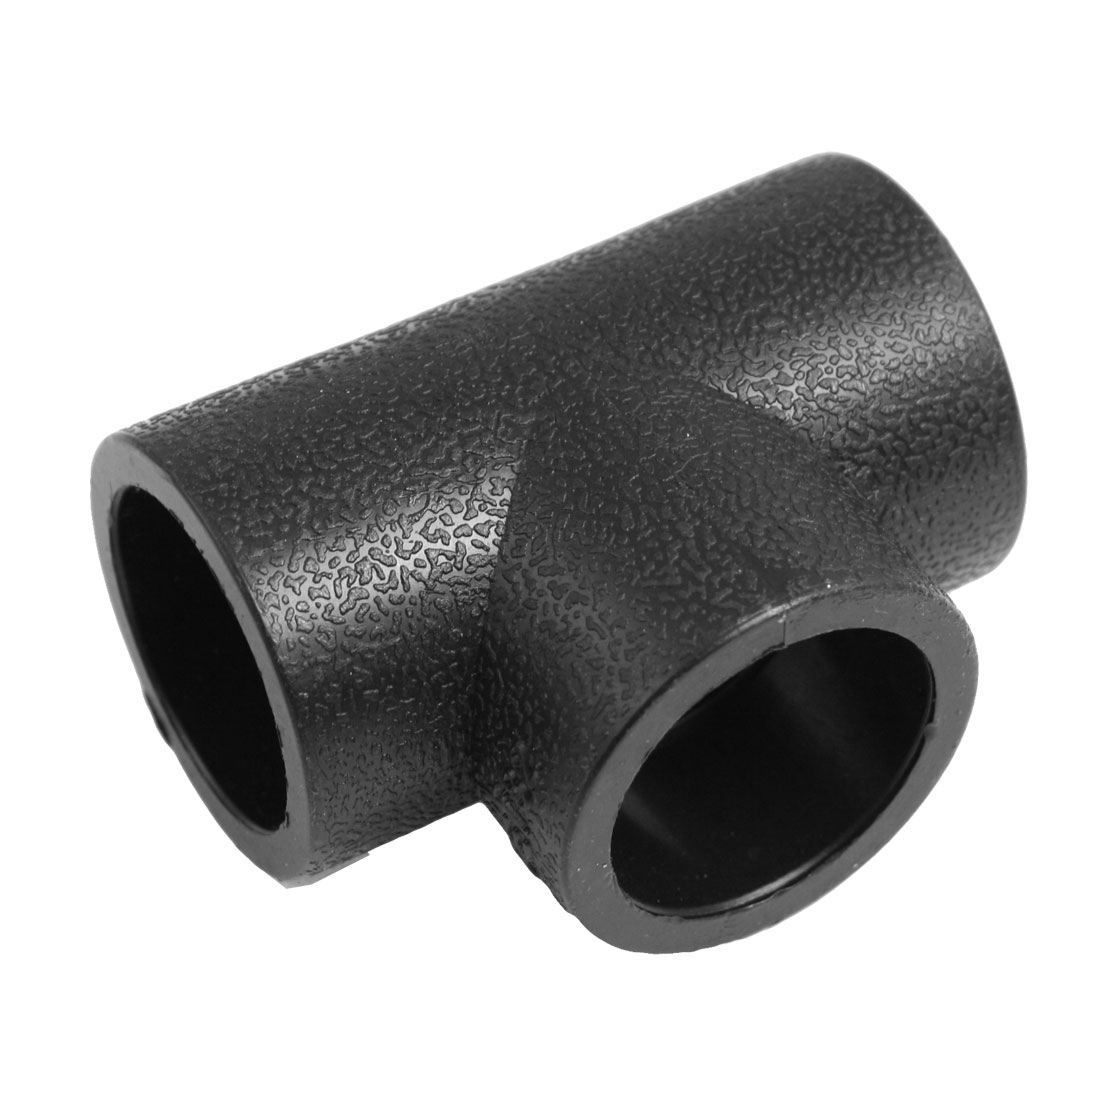 32mm Inside Diameter Three Way HDPE Pipe Tee Connector Black